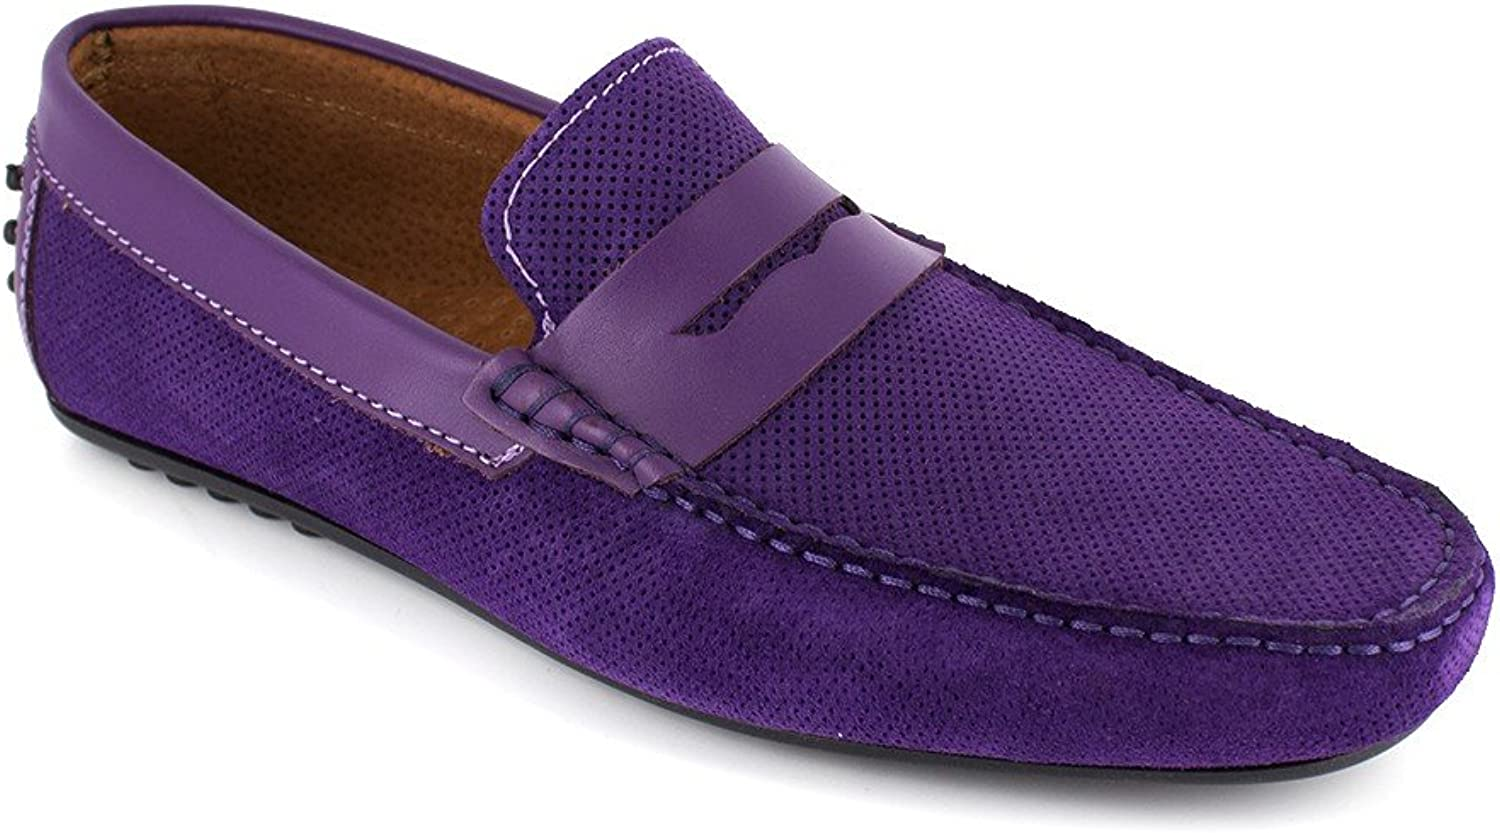 Peter Blade Loafer Mallow Leather BASILEO